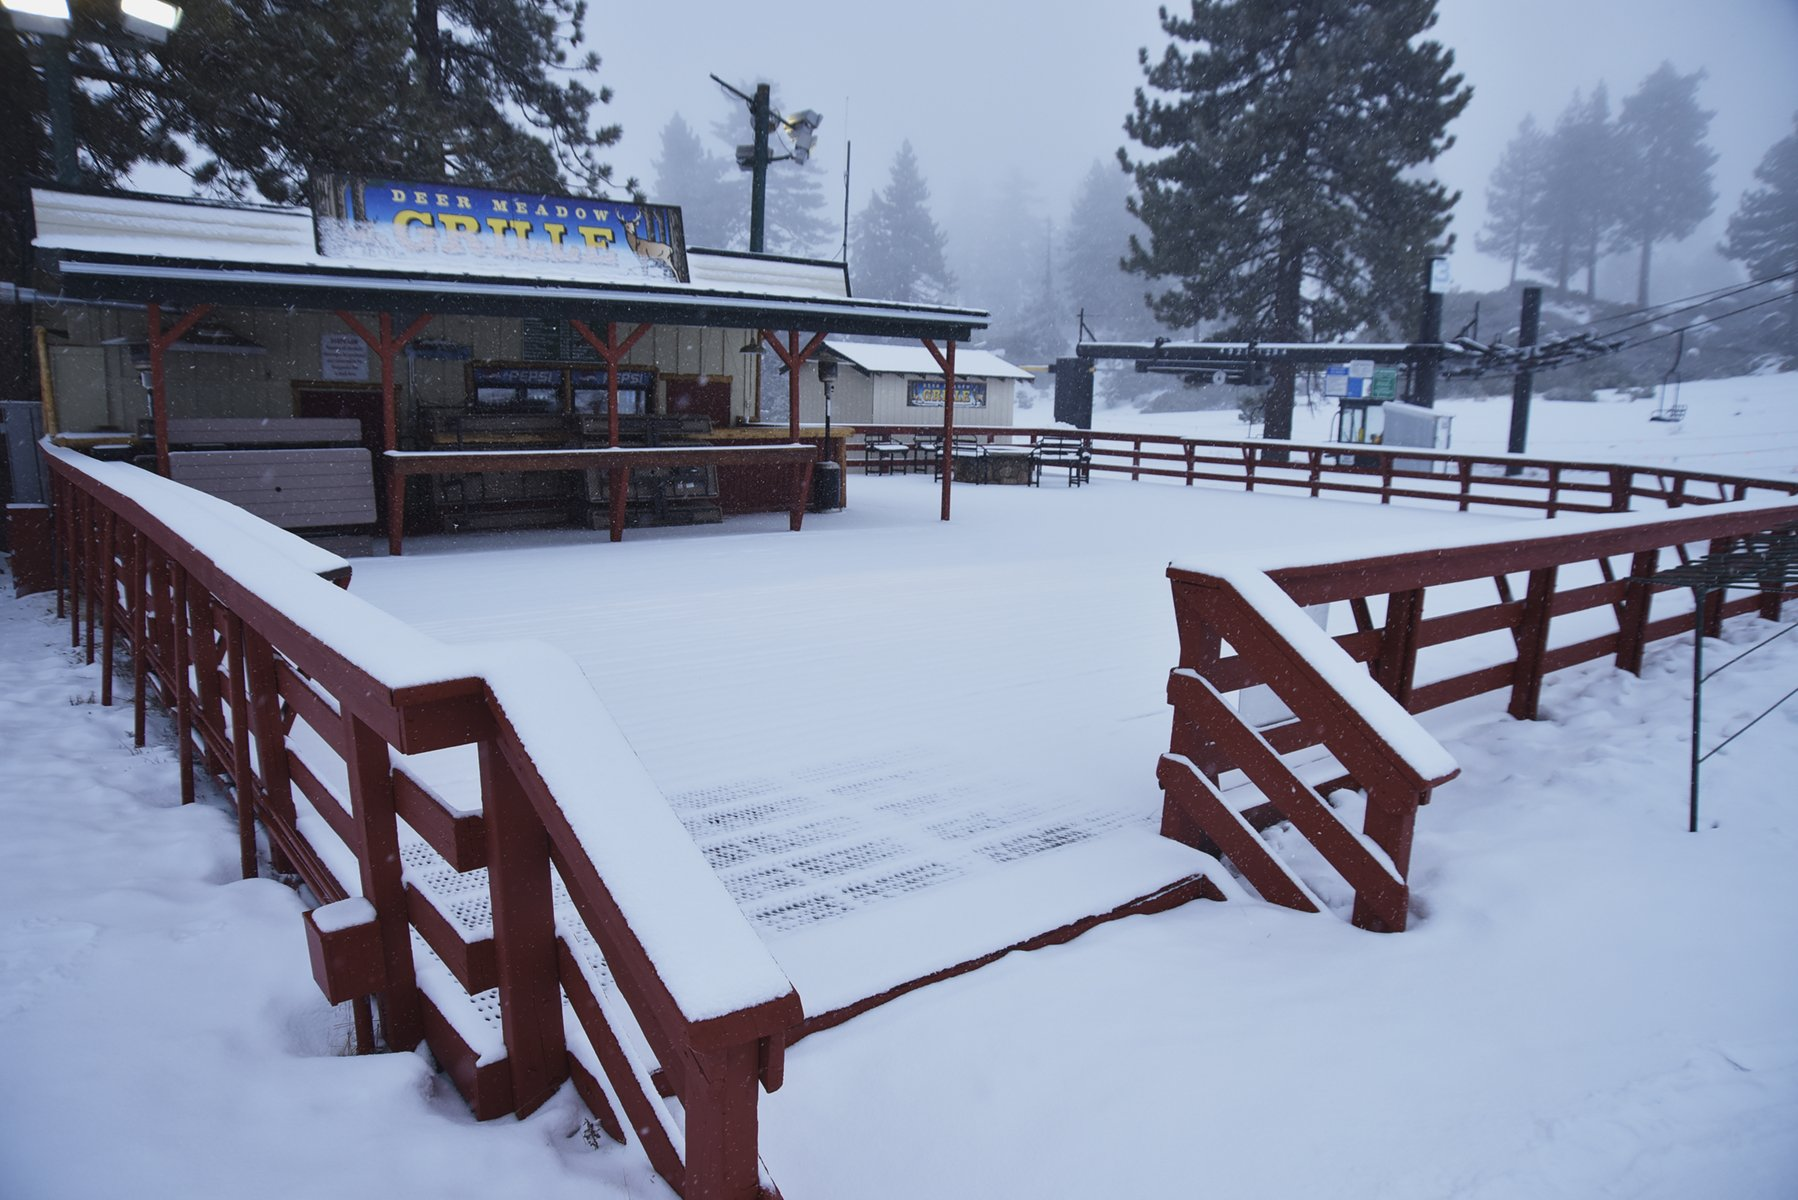 View of Deer Meadow Grille during snowfall